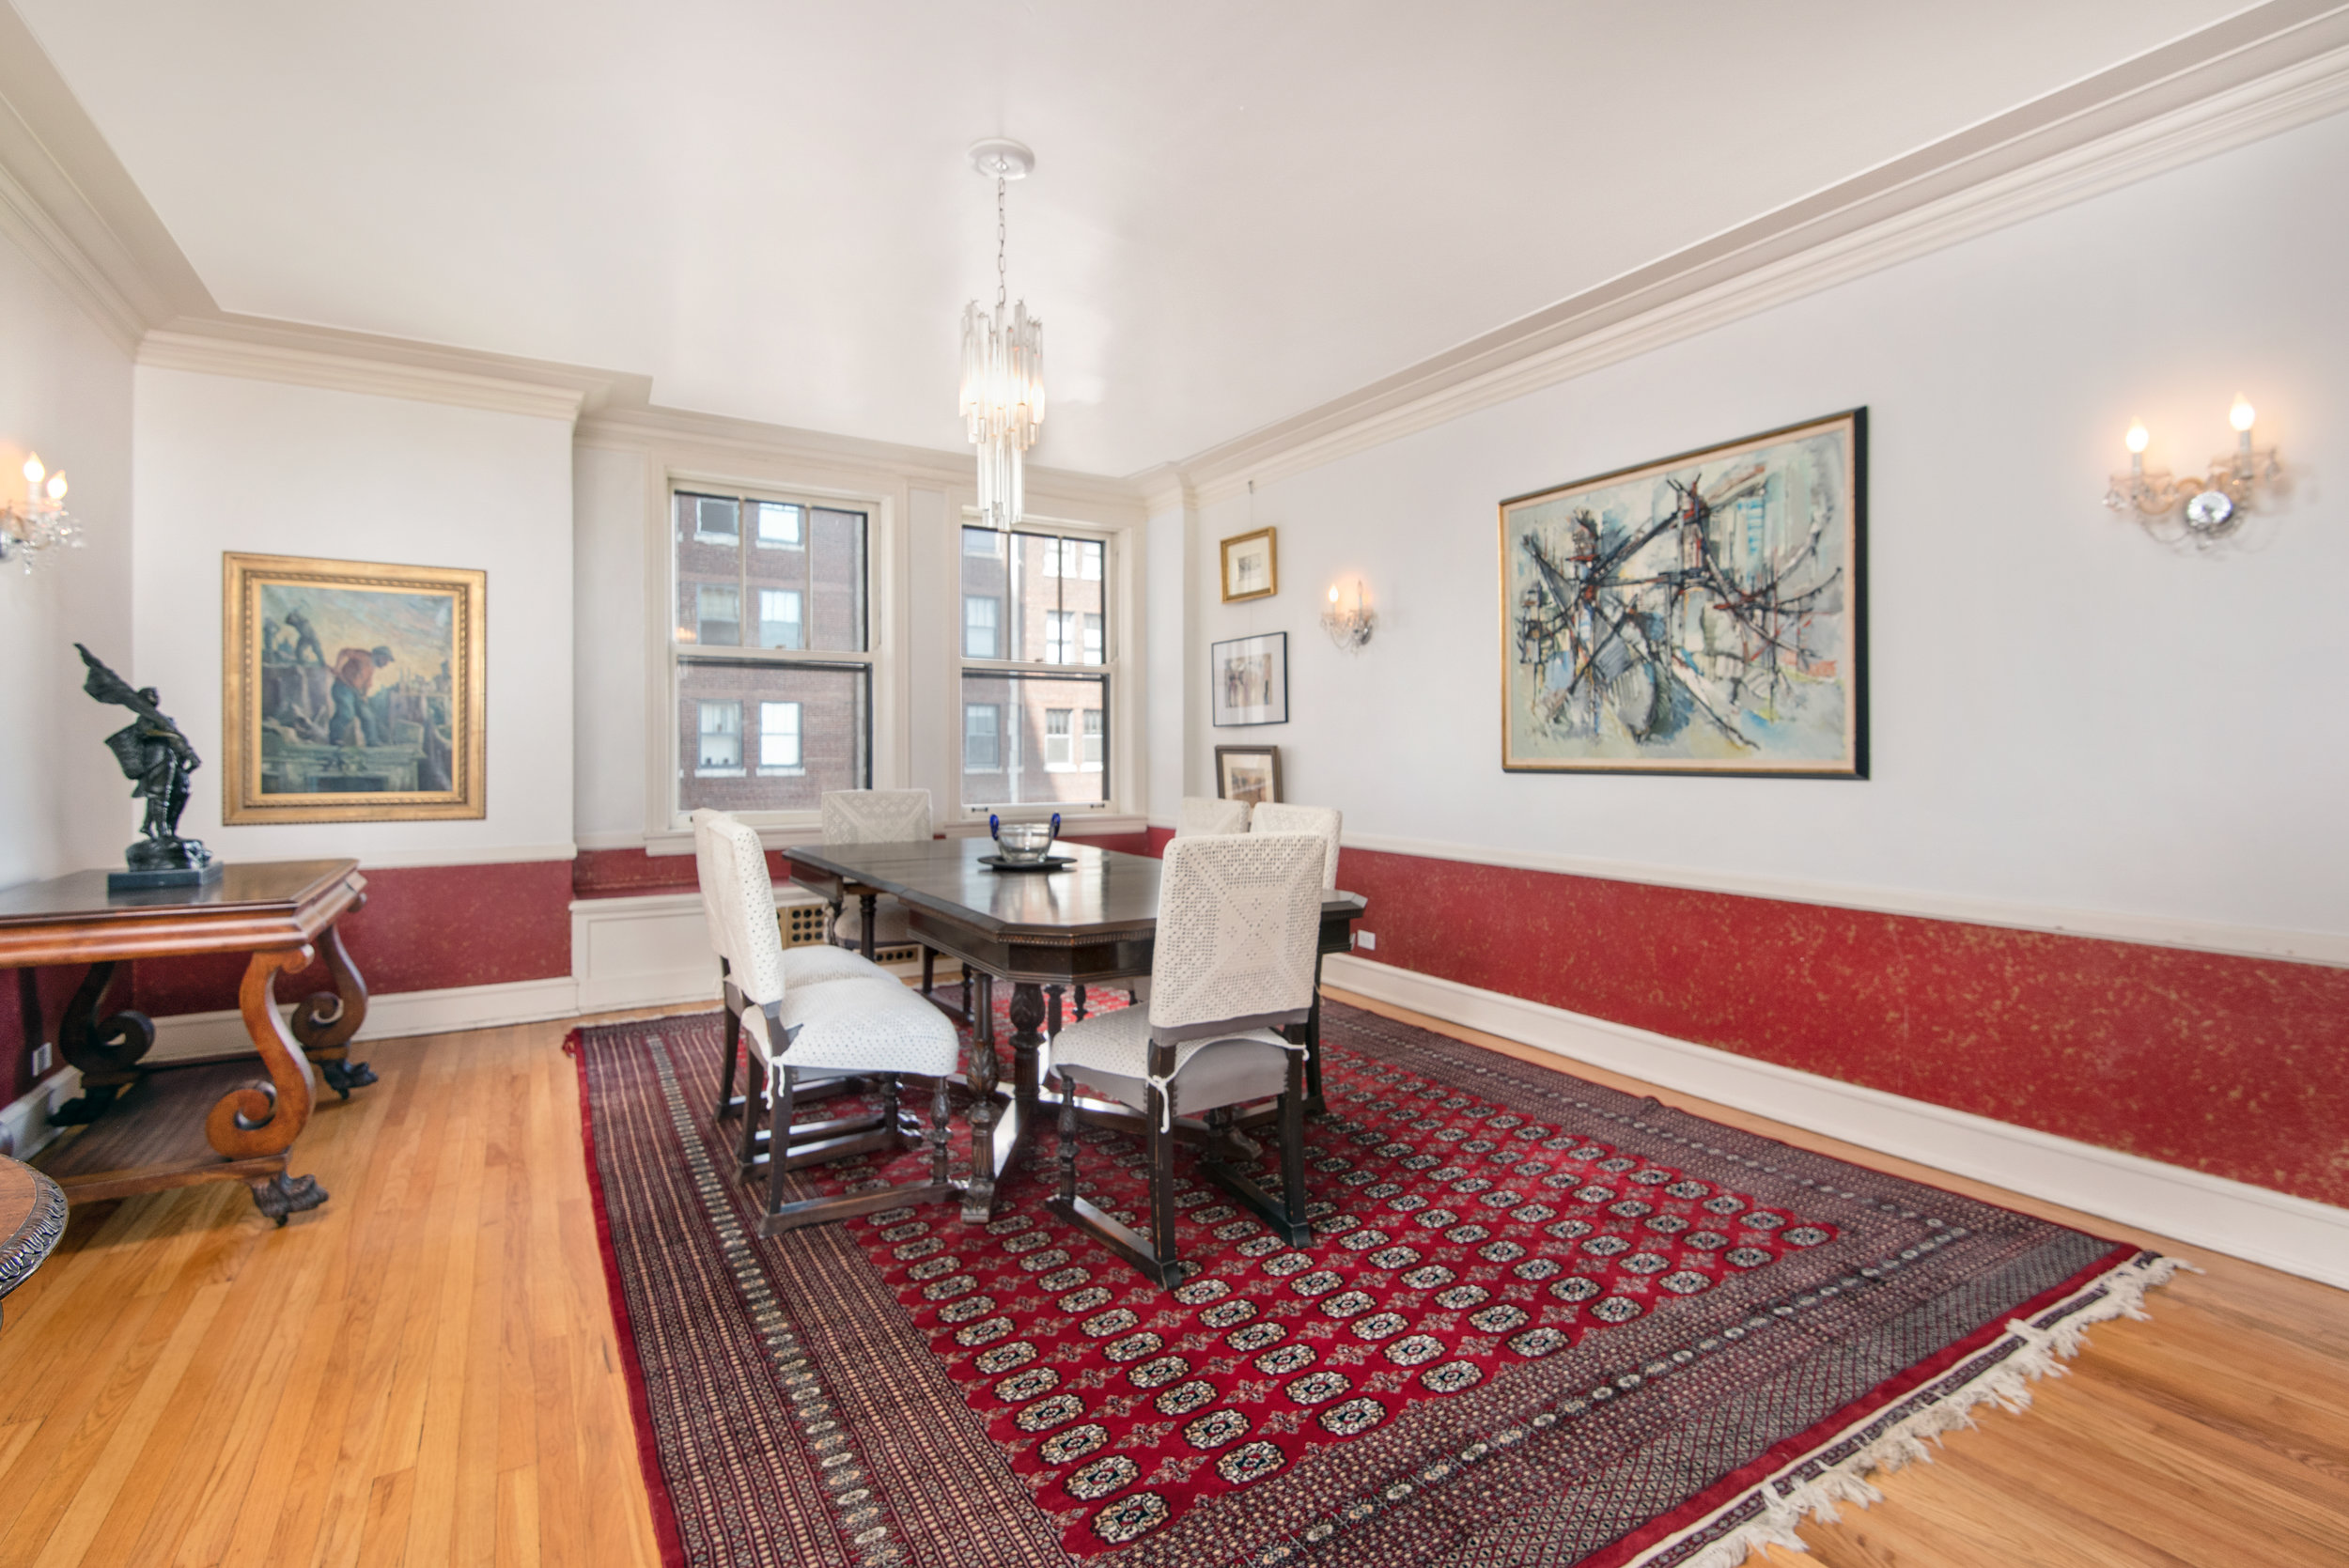 07. 2440 Lakeview dining room.jpg